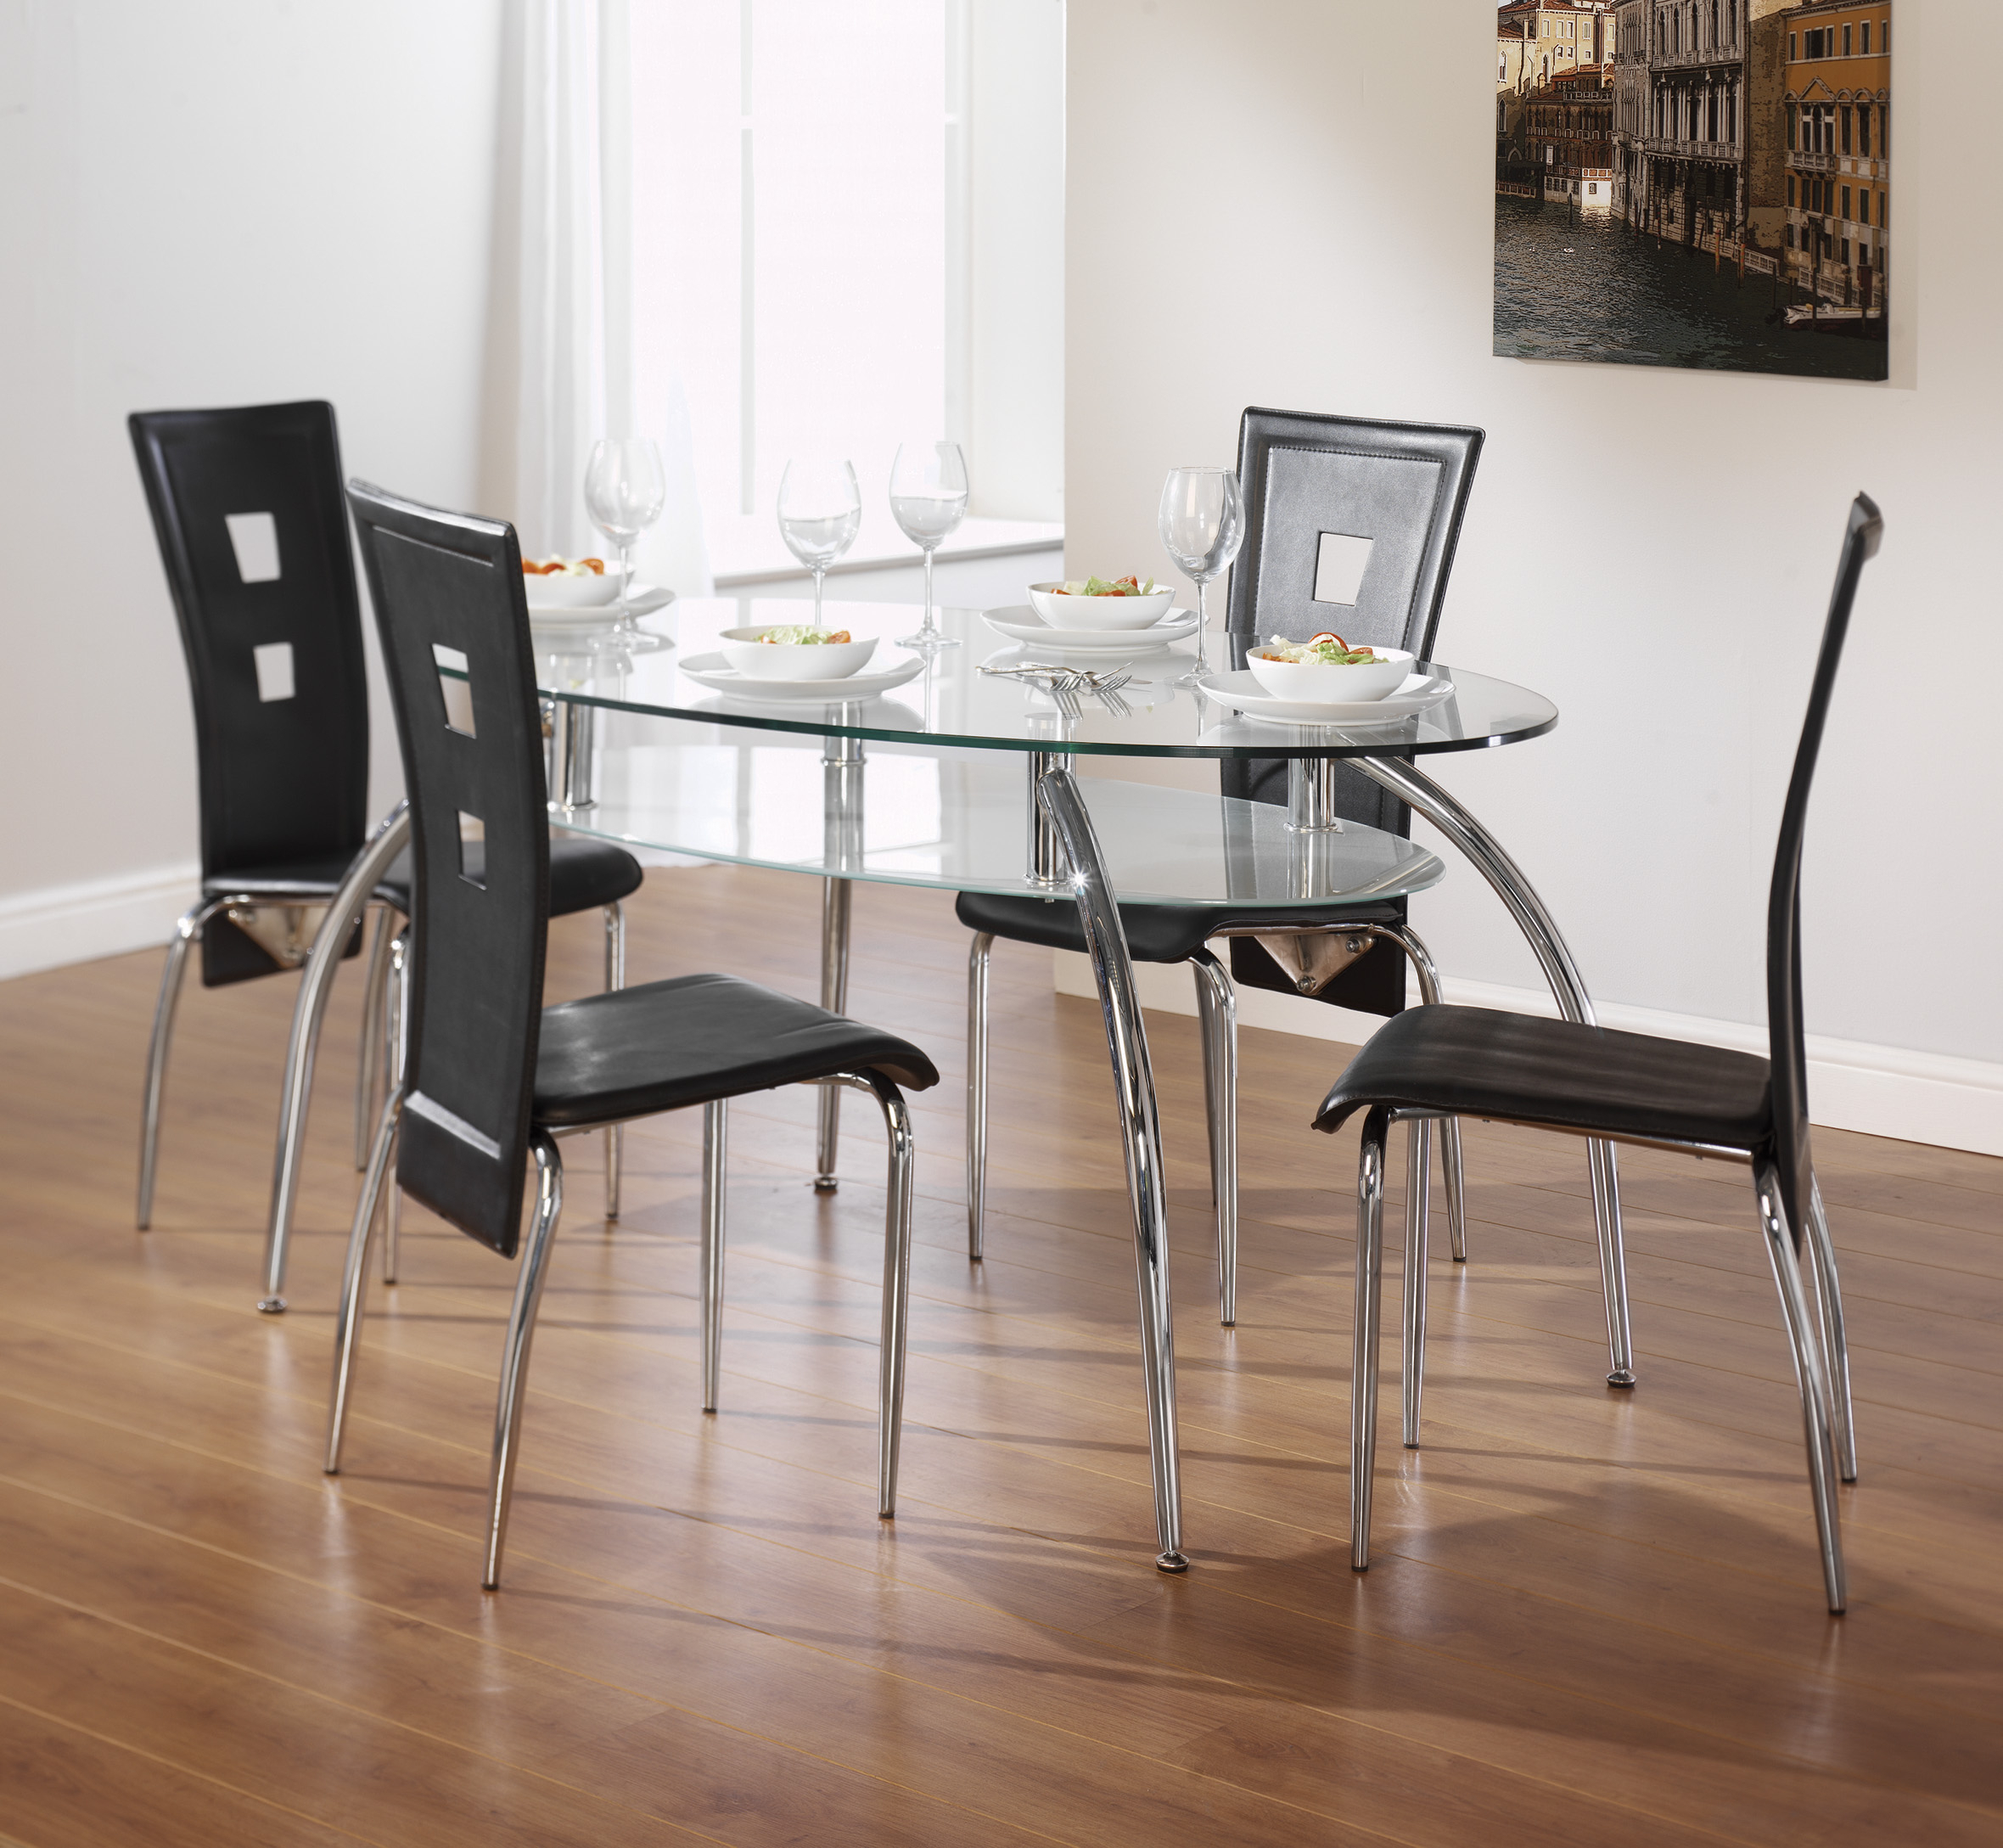 Most Recent Dining Tables At Aintree Liquidation Centre Intended For 4 Seater Round Wooden Dining Tables With Chrome Legs (View 7 of 30)